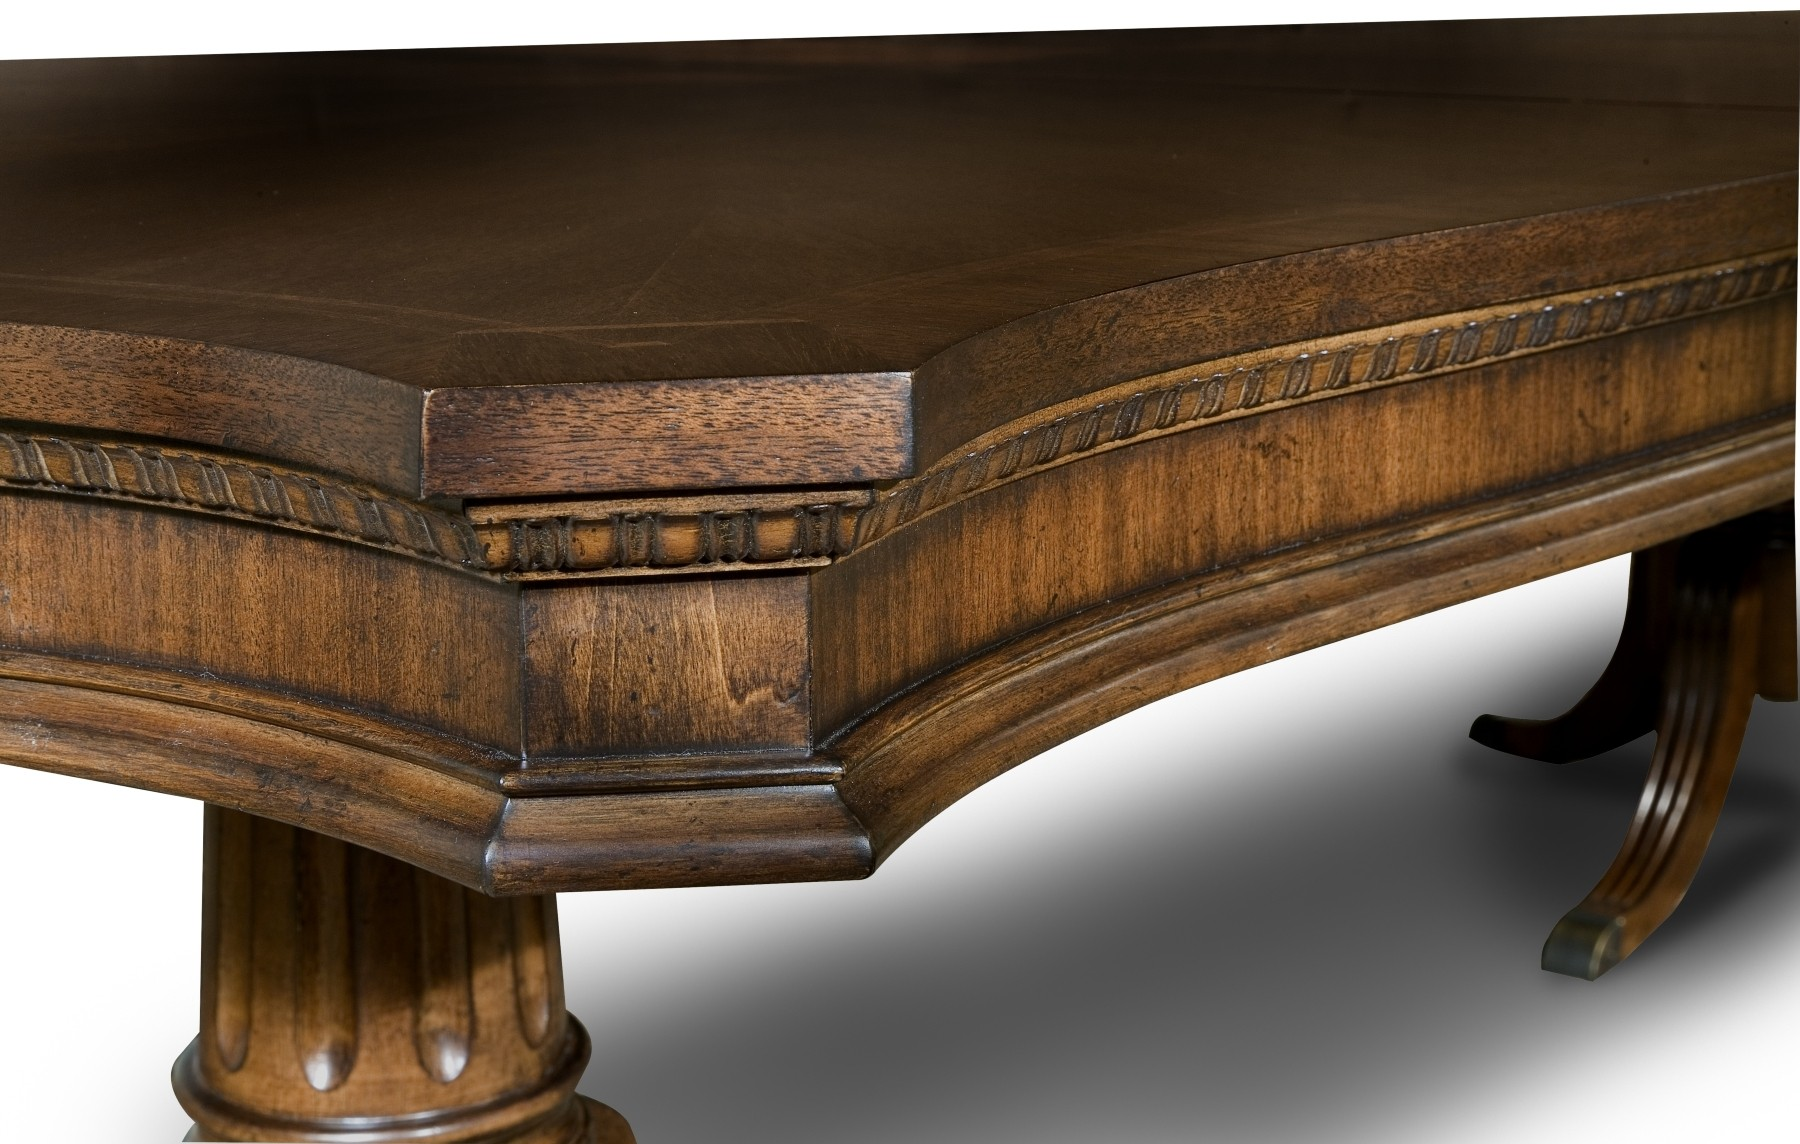 American Traditions Rectangular Pedestal Table From Legacy Classic 9350 622 B T Coleman